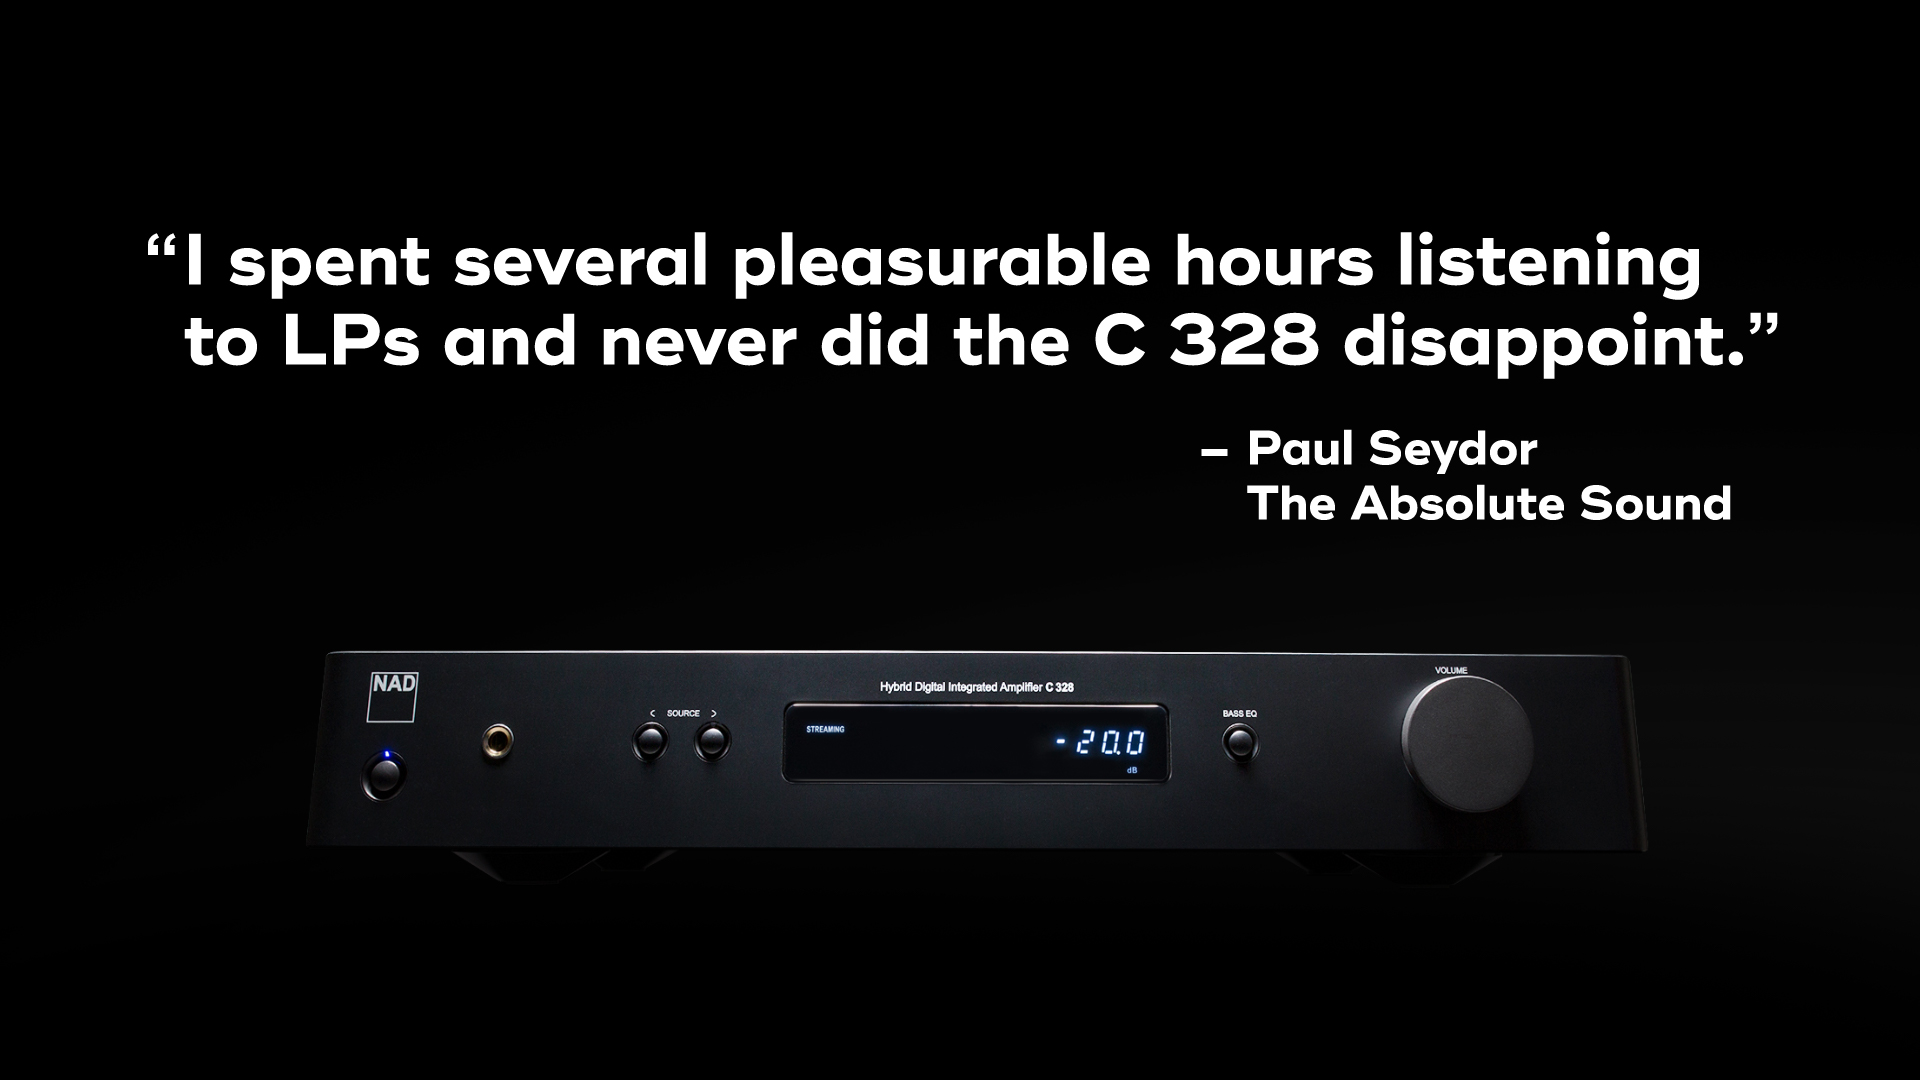 NAD C 328 The Absolute Sound Review